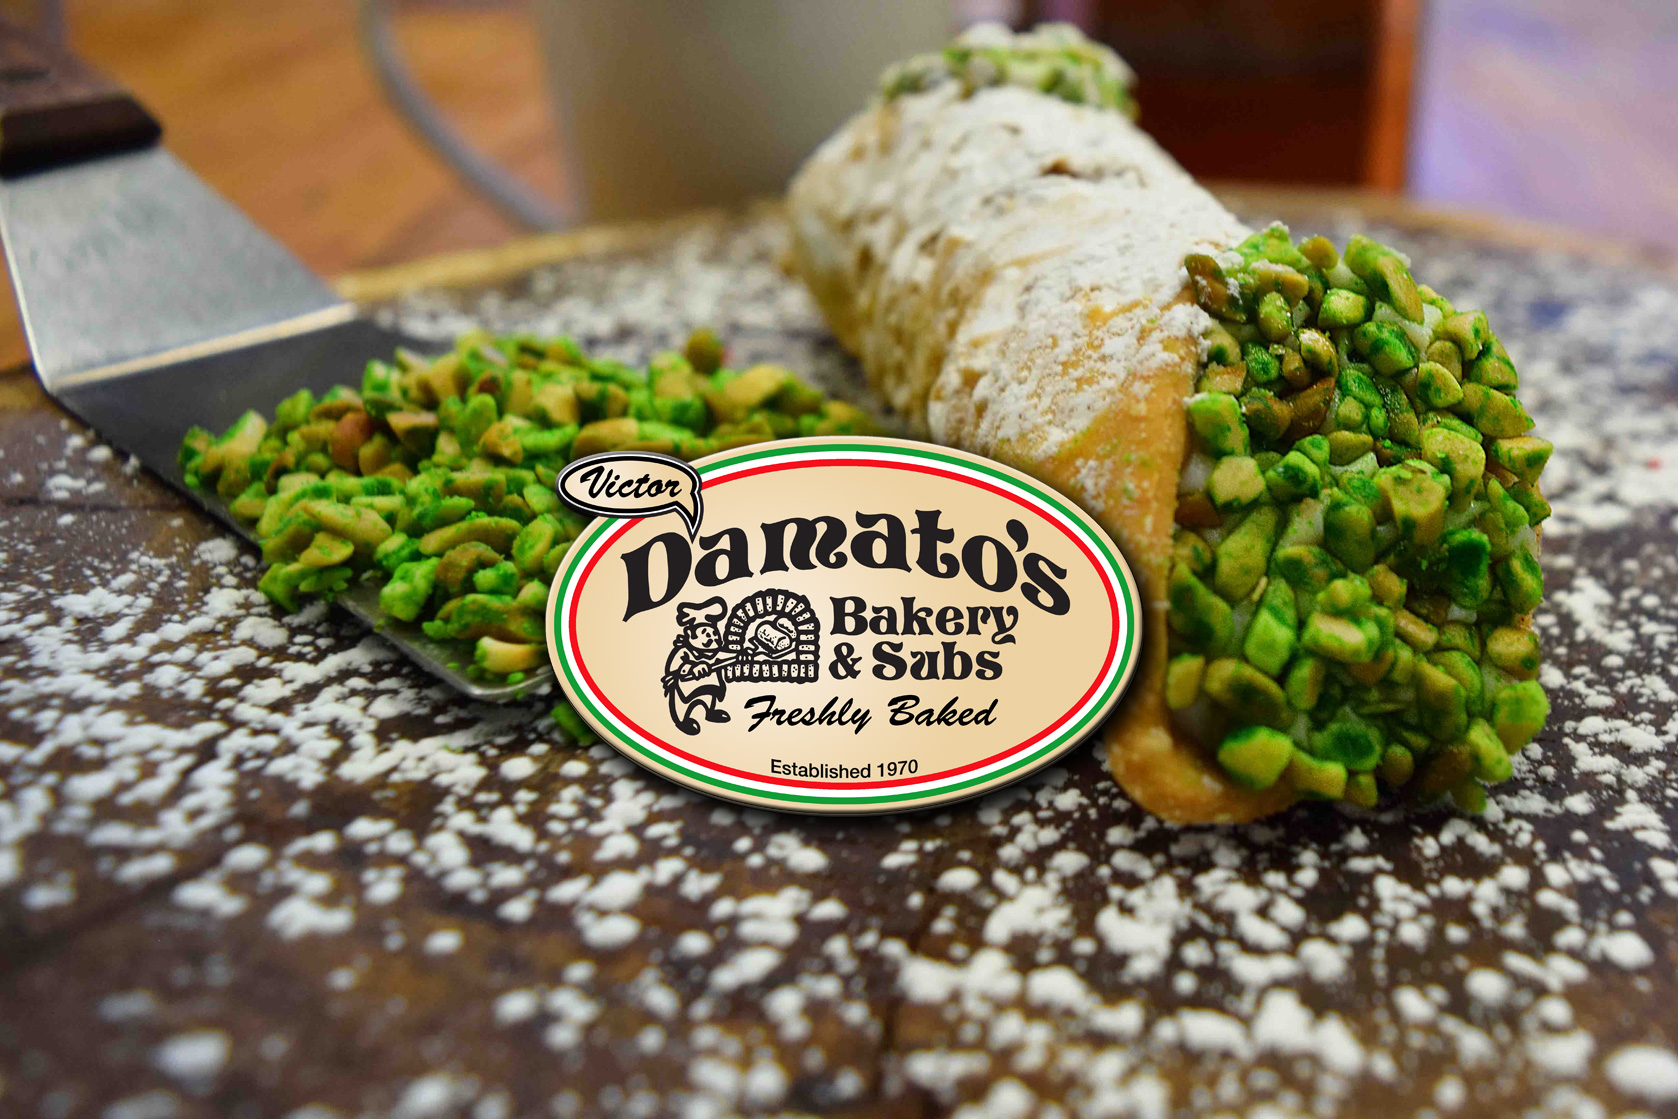 D'Amato's Chicago Cannoli